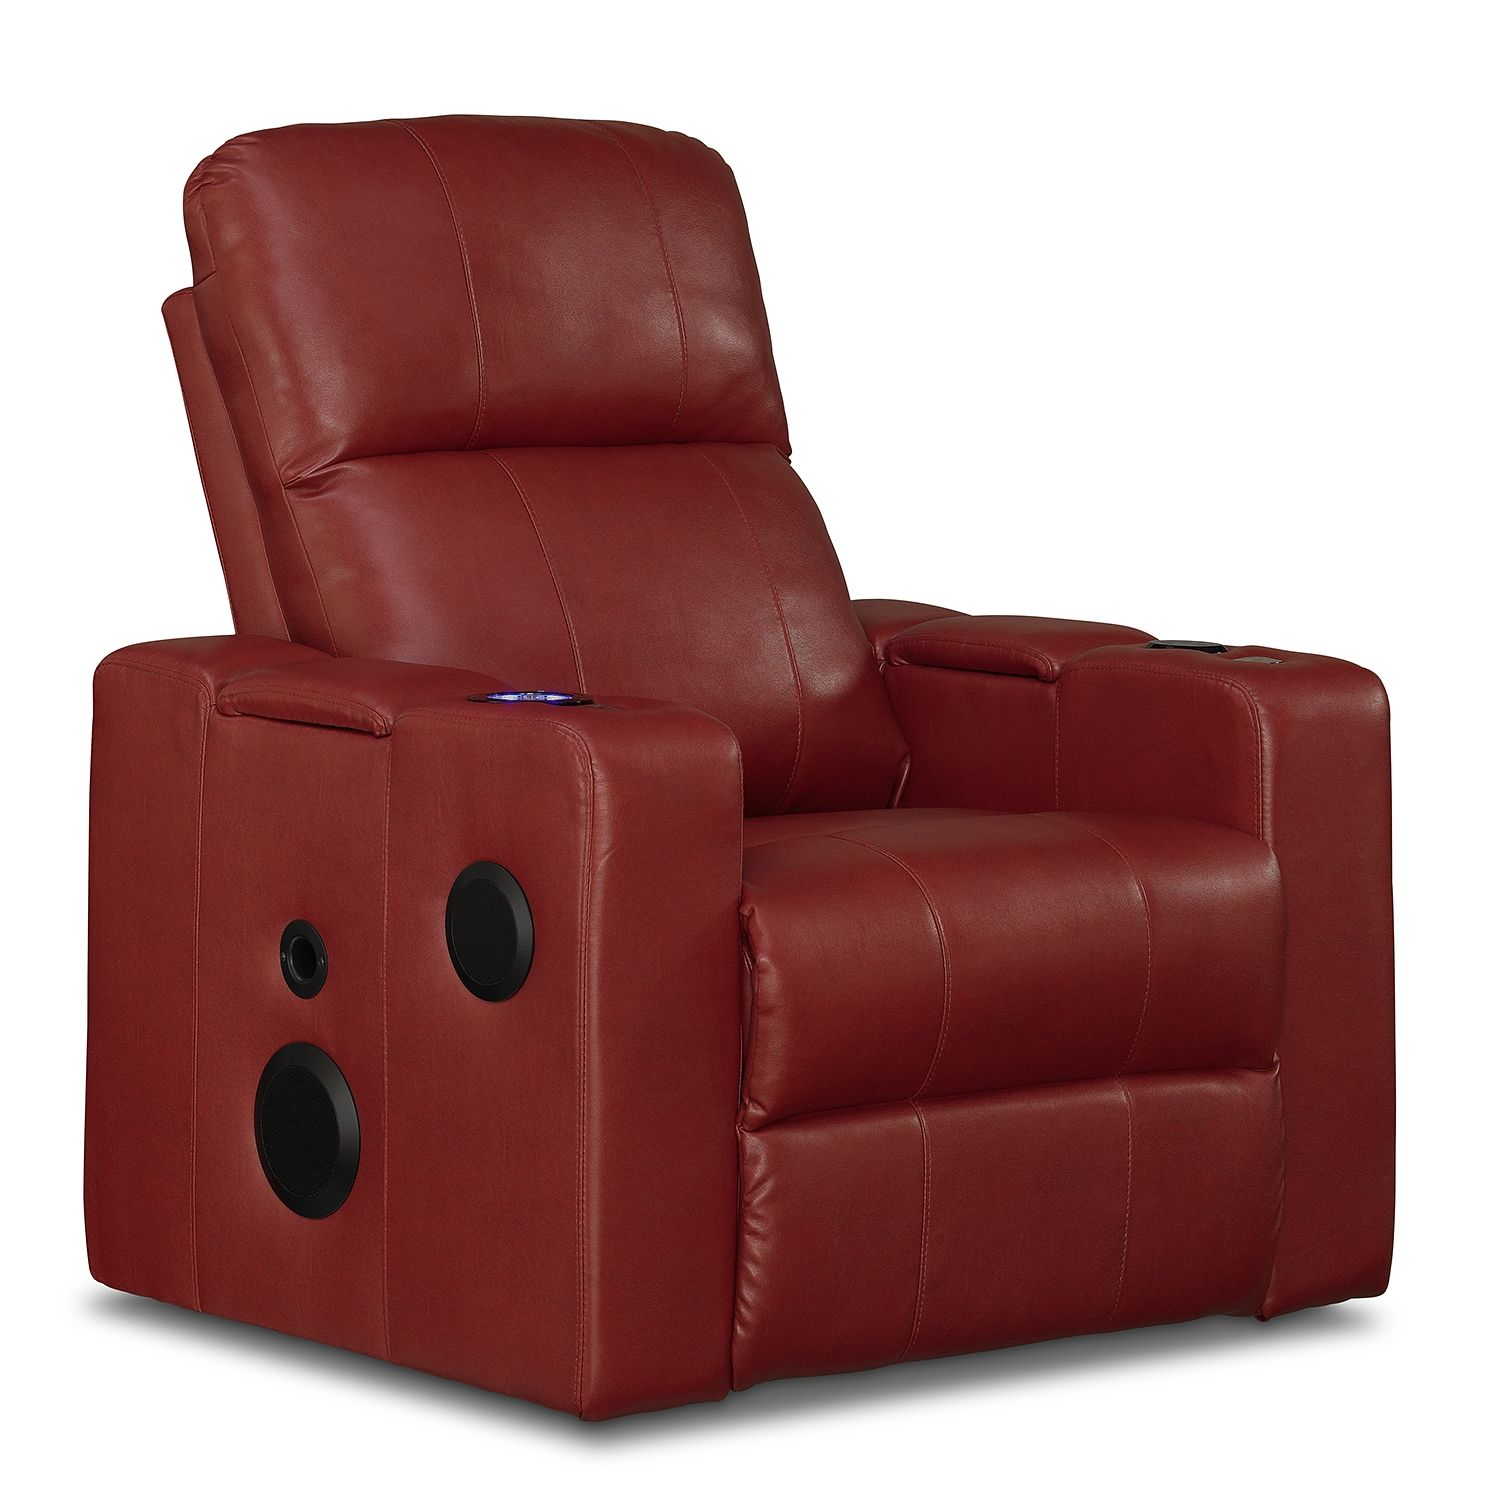 Leather recliner with builtin speakers, USB ports, power